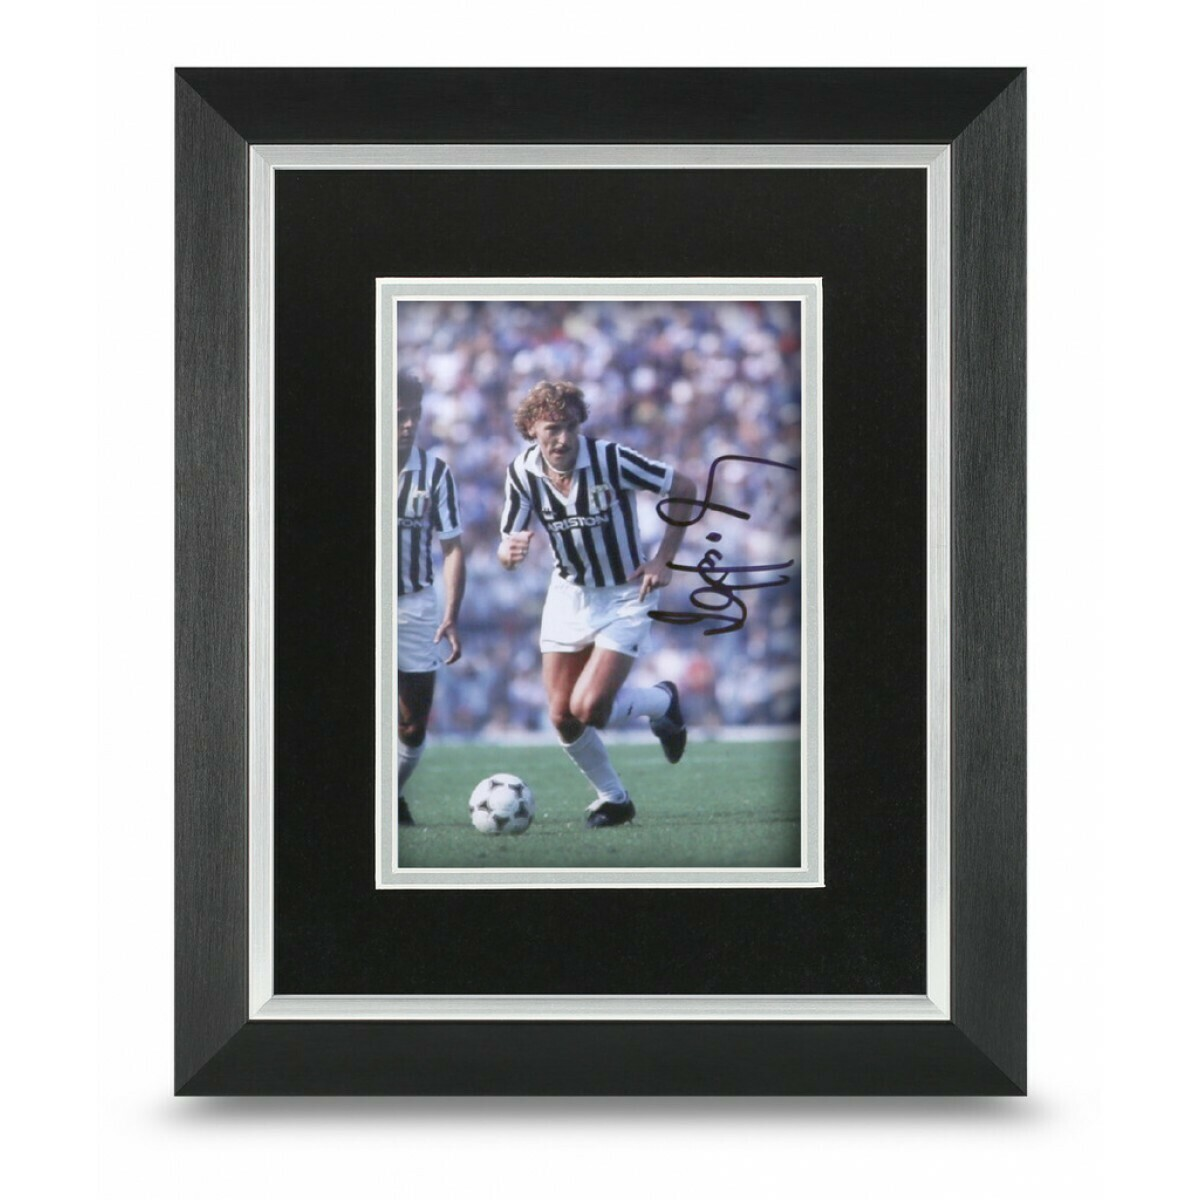 Zbigniew Boniek PHOTO framed  Zbigniew Boniek 10*8   AUTOGRAFATA  CORNICE SIGNED AUTOGRAPH SIGNED Zbigniew Boniek PHOTO FRAMED  SIGNED JUVENTUS